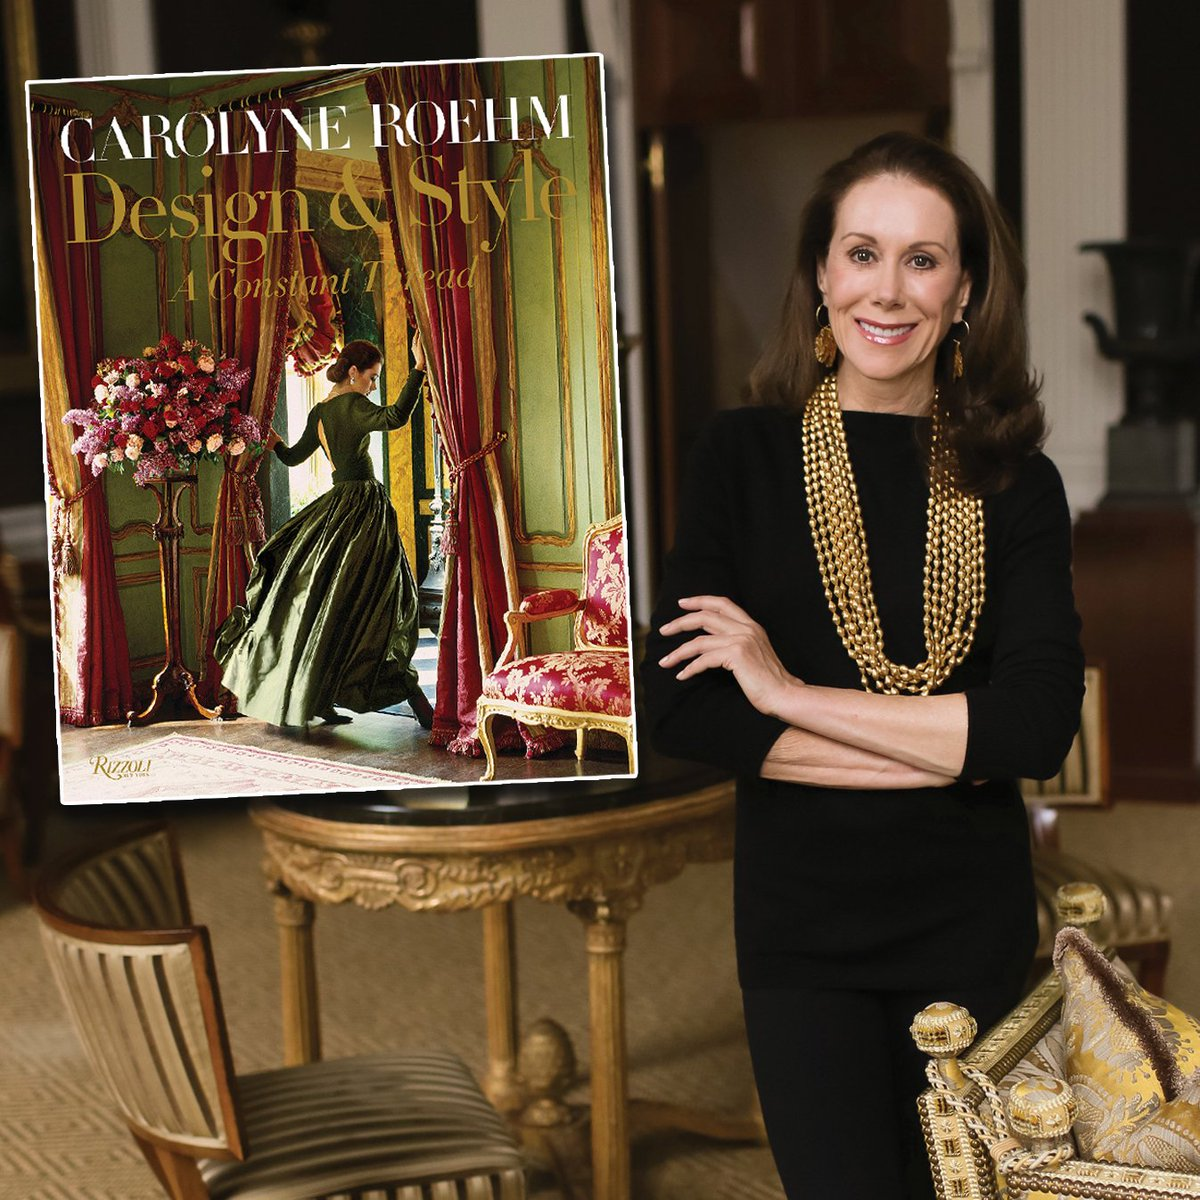 Join us at Doyle tomorrow evening for a slide presentation and book signing reception with Carolyne Roehm in celebration of her new book, Design & Style: A Constant Thread (Rizzoli). Details at Doyle.com